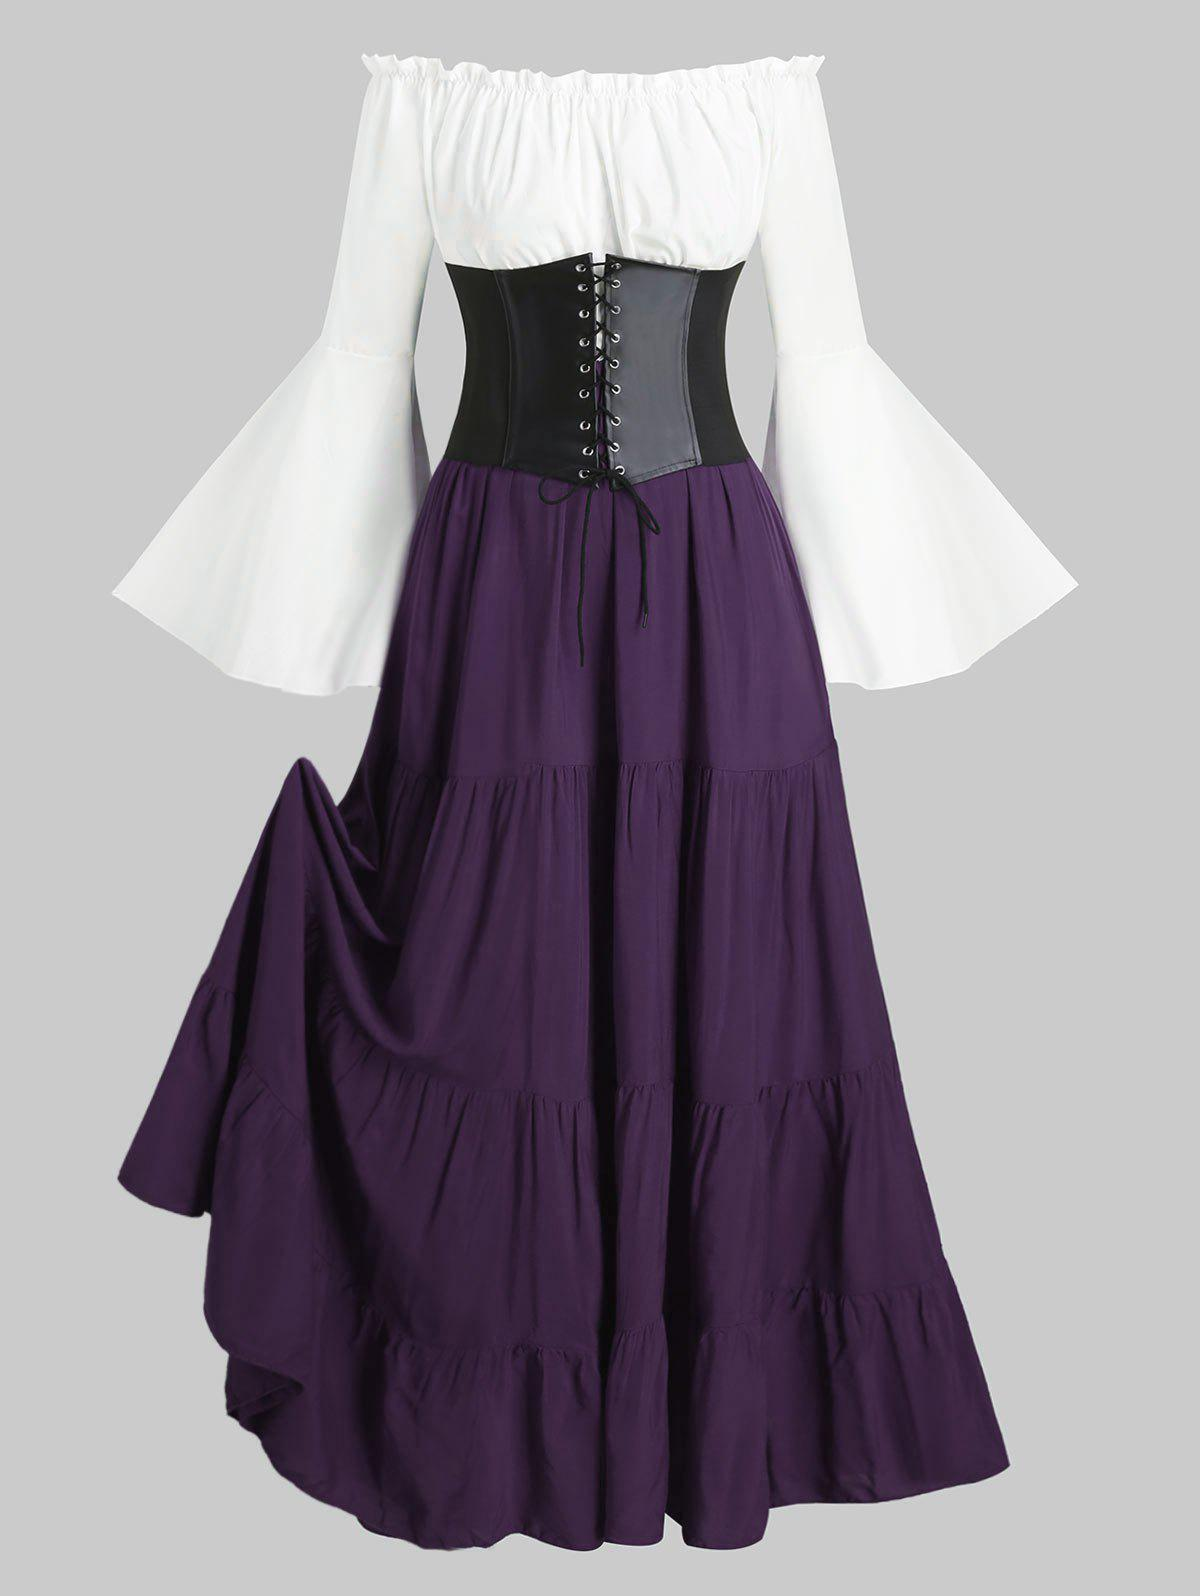 Lace-up Corset Belt Vintage Renaissance Medieval Dress - PURPLE IRIS 3XL